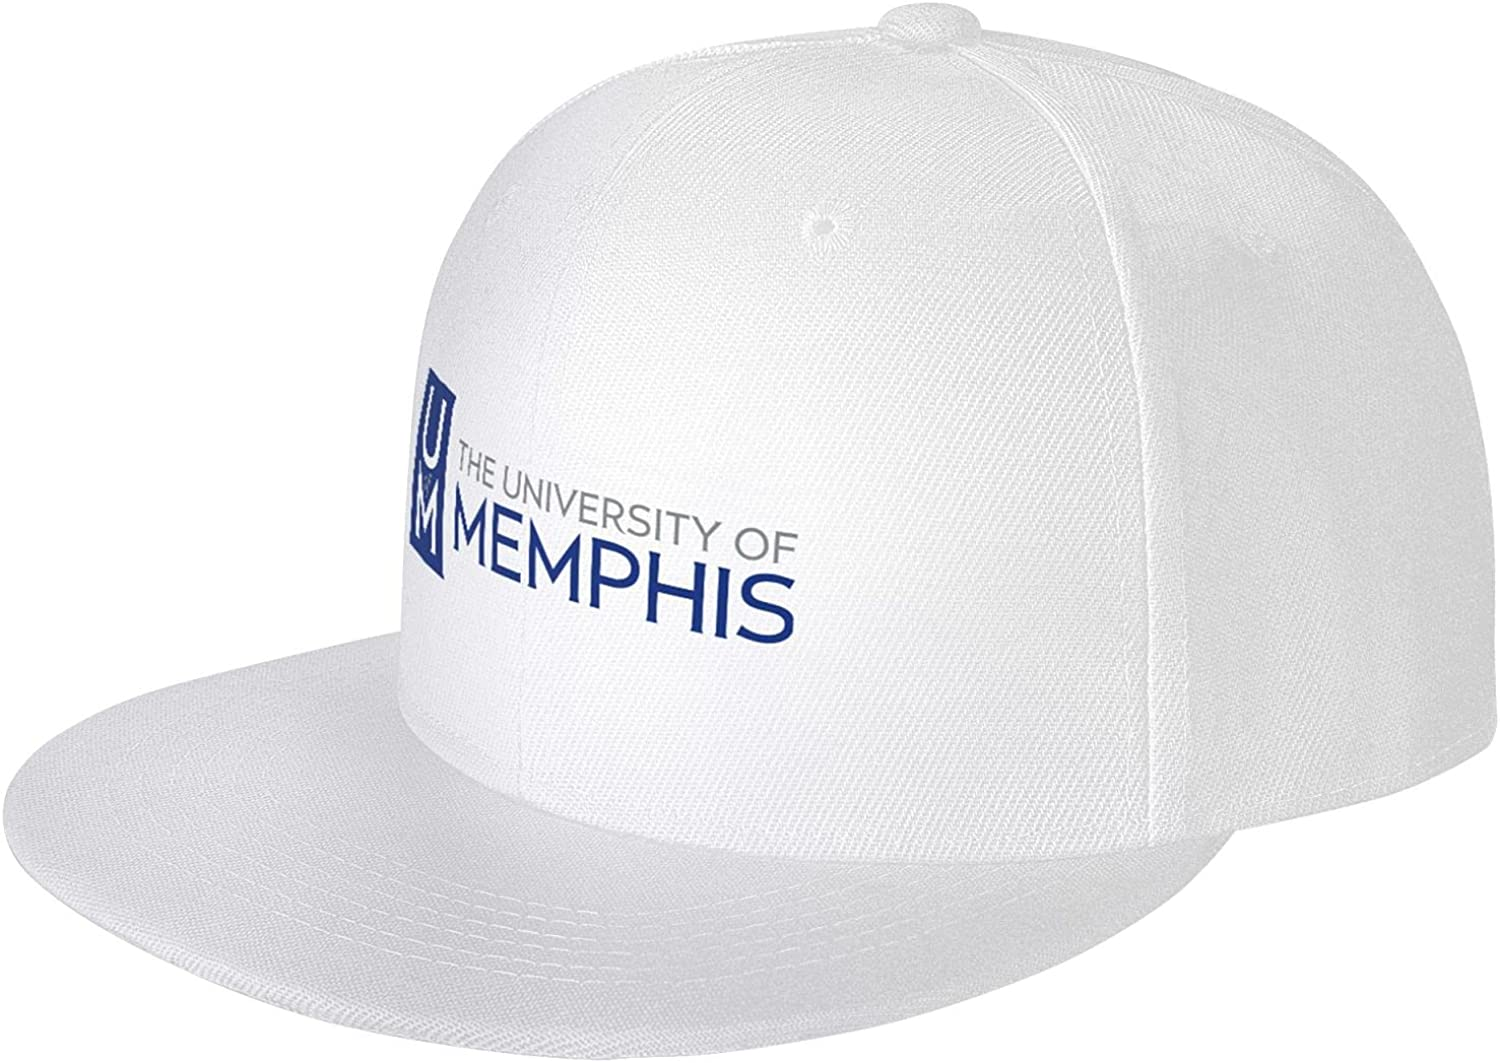 University of Memphis-Logo Unisex Adjustable Baseball Cap, Flat-Brimmed Sun Hat, Casual and Breathable White